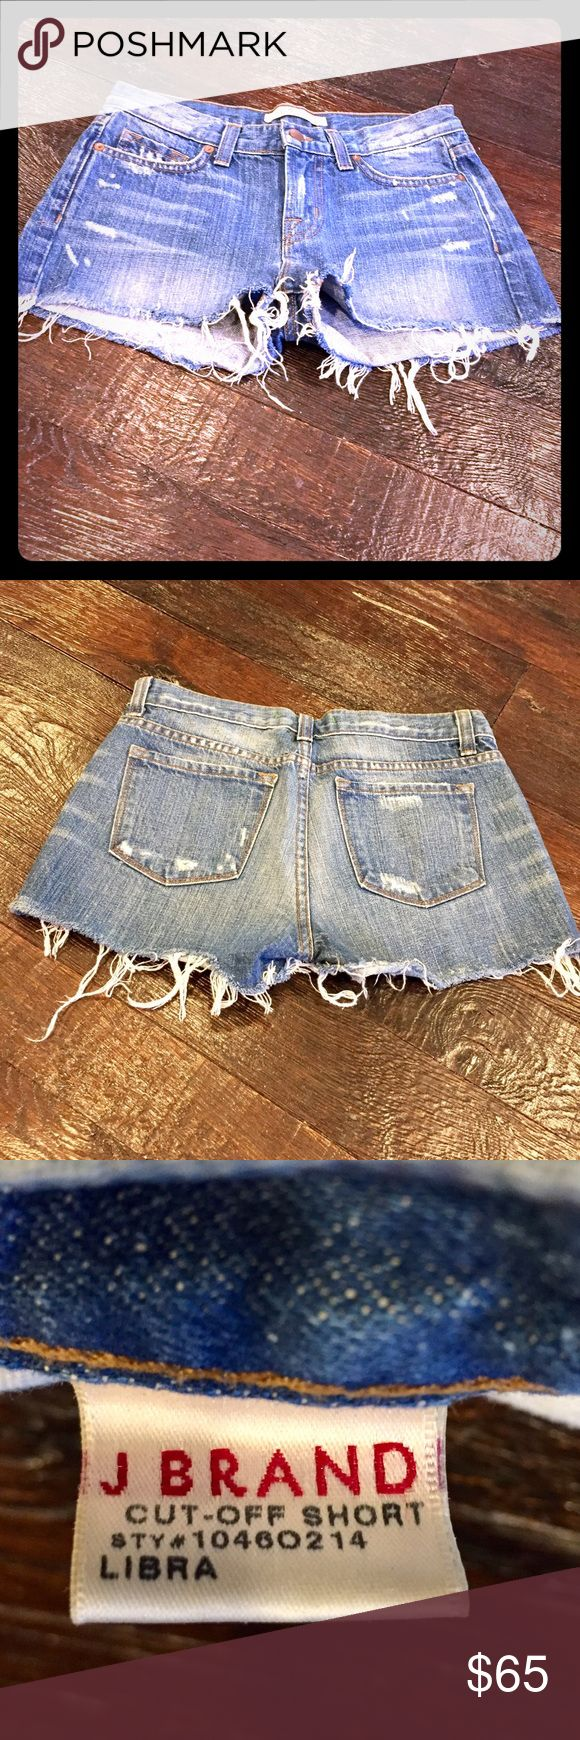 J Brand Cut-Off Denim Shorts - Size 26 J Brand Cut-Off Denim Shorts - Like New!   Size: 26, Style #10460214, Color: Libra, 100% Cotton, Retail: $125.  Worn just ONE time, these shorts are in EXCELLENT condition! J Brand Shorts Jean Shorts